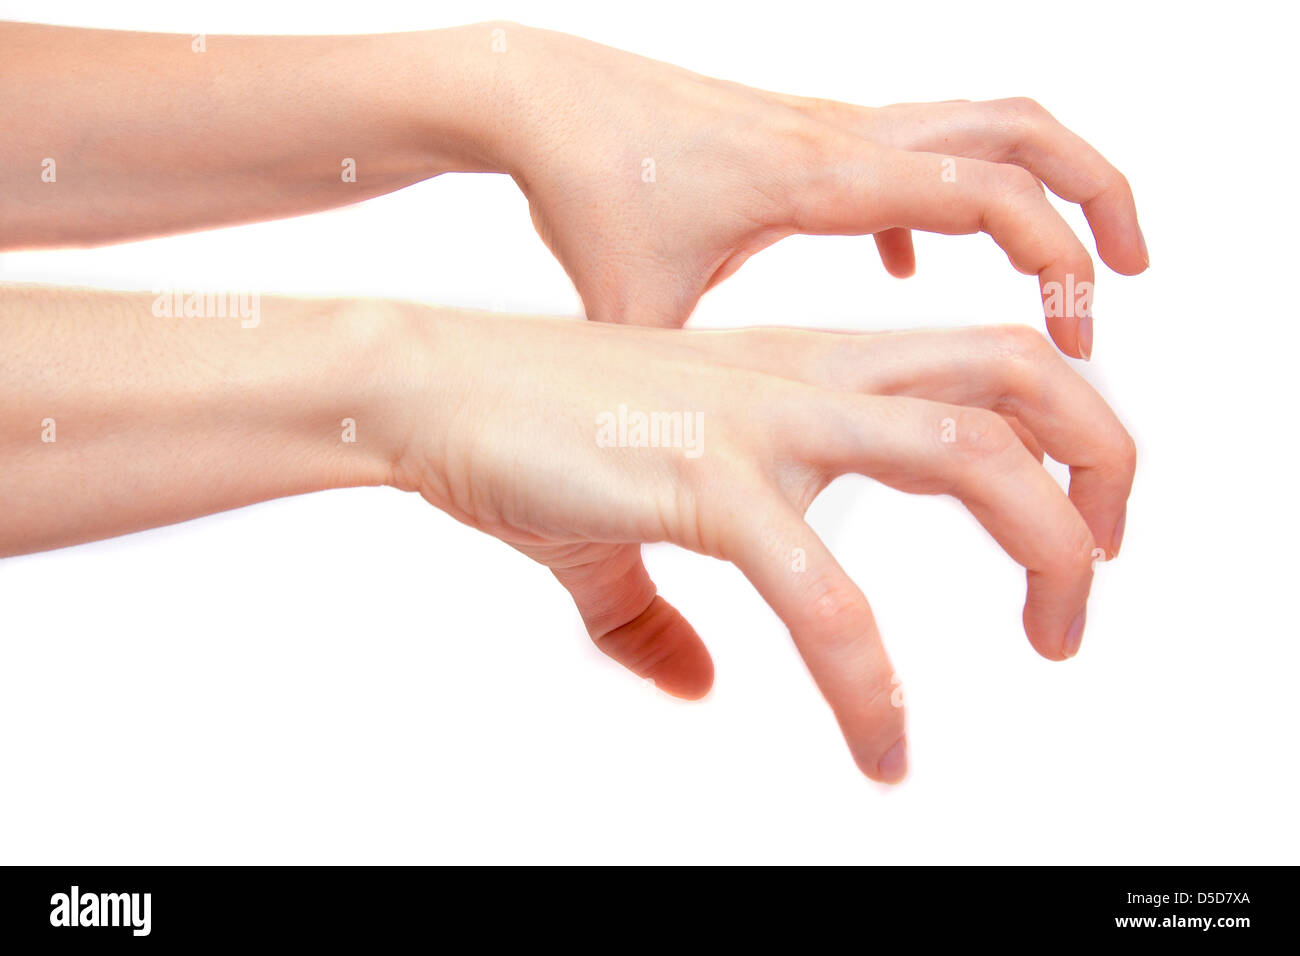 Scary, frightening hands isolated on white background - Stock Image